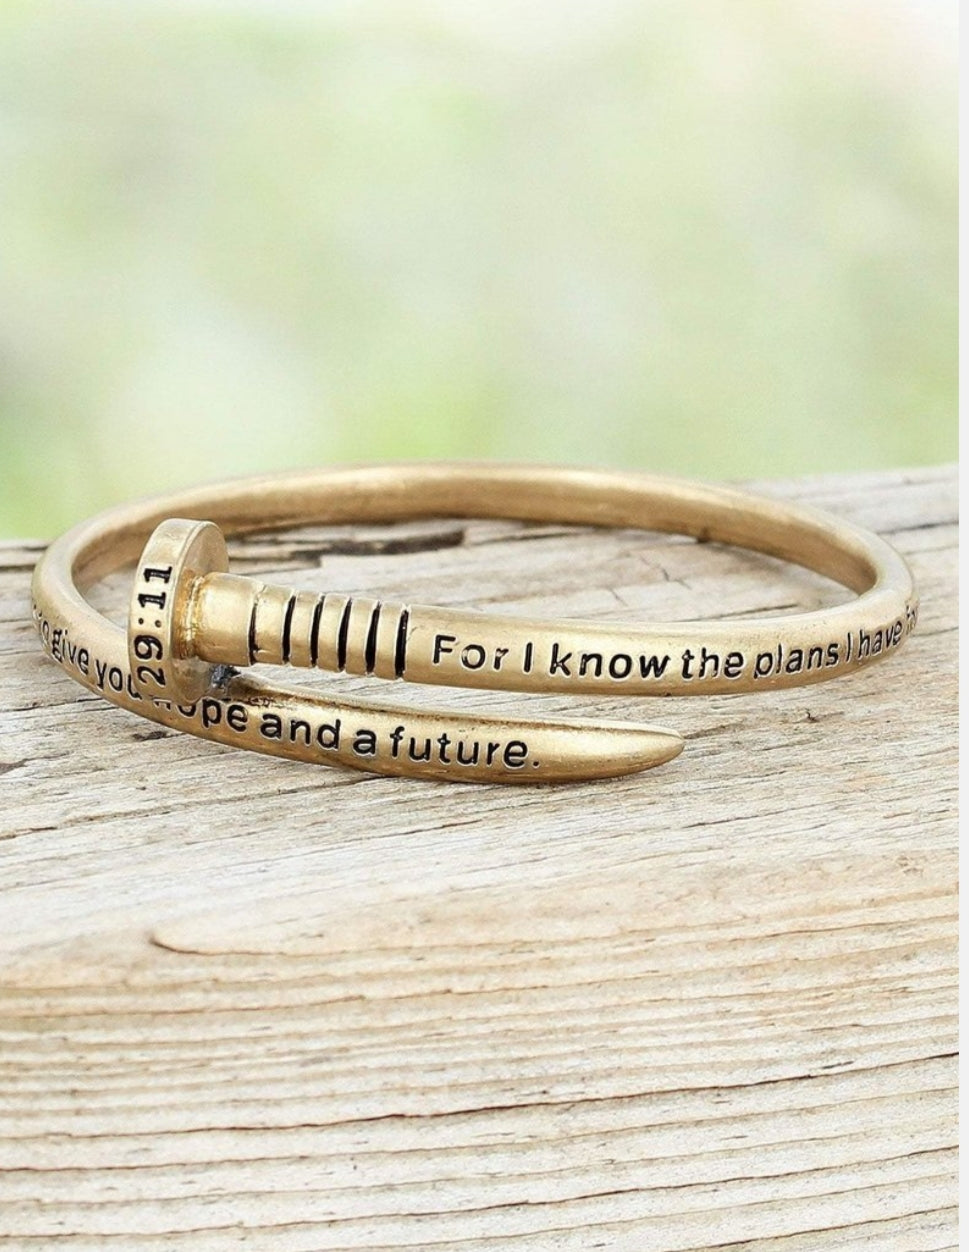 WORN GOLDTONE JEREMIAH 29:11 NAIL BANGLE- AVAILABLE FOR PRESALE UNTIL APRIL 15TH